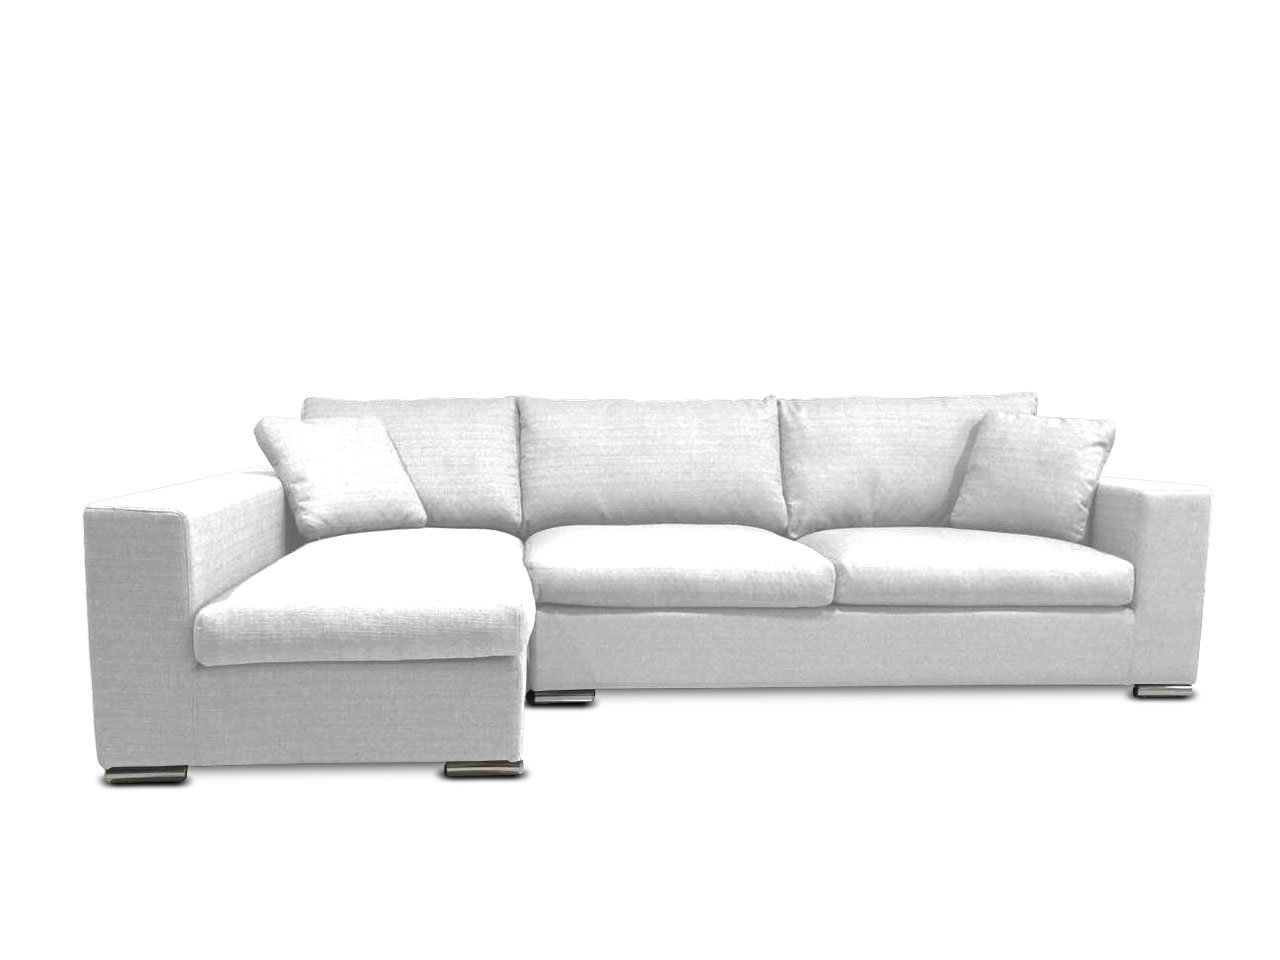 KMP Furniture Coleen Sectional Sofa & Left Chaise Lounge - White